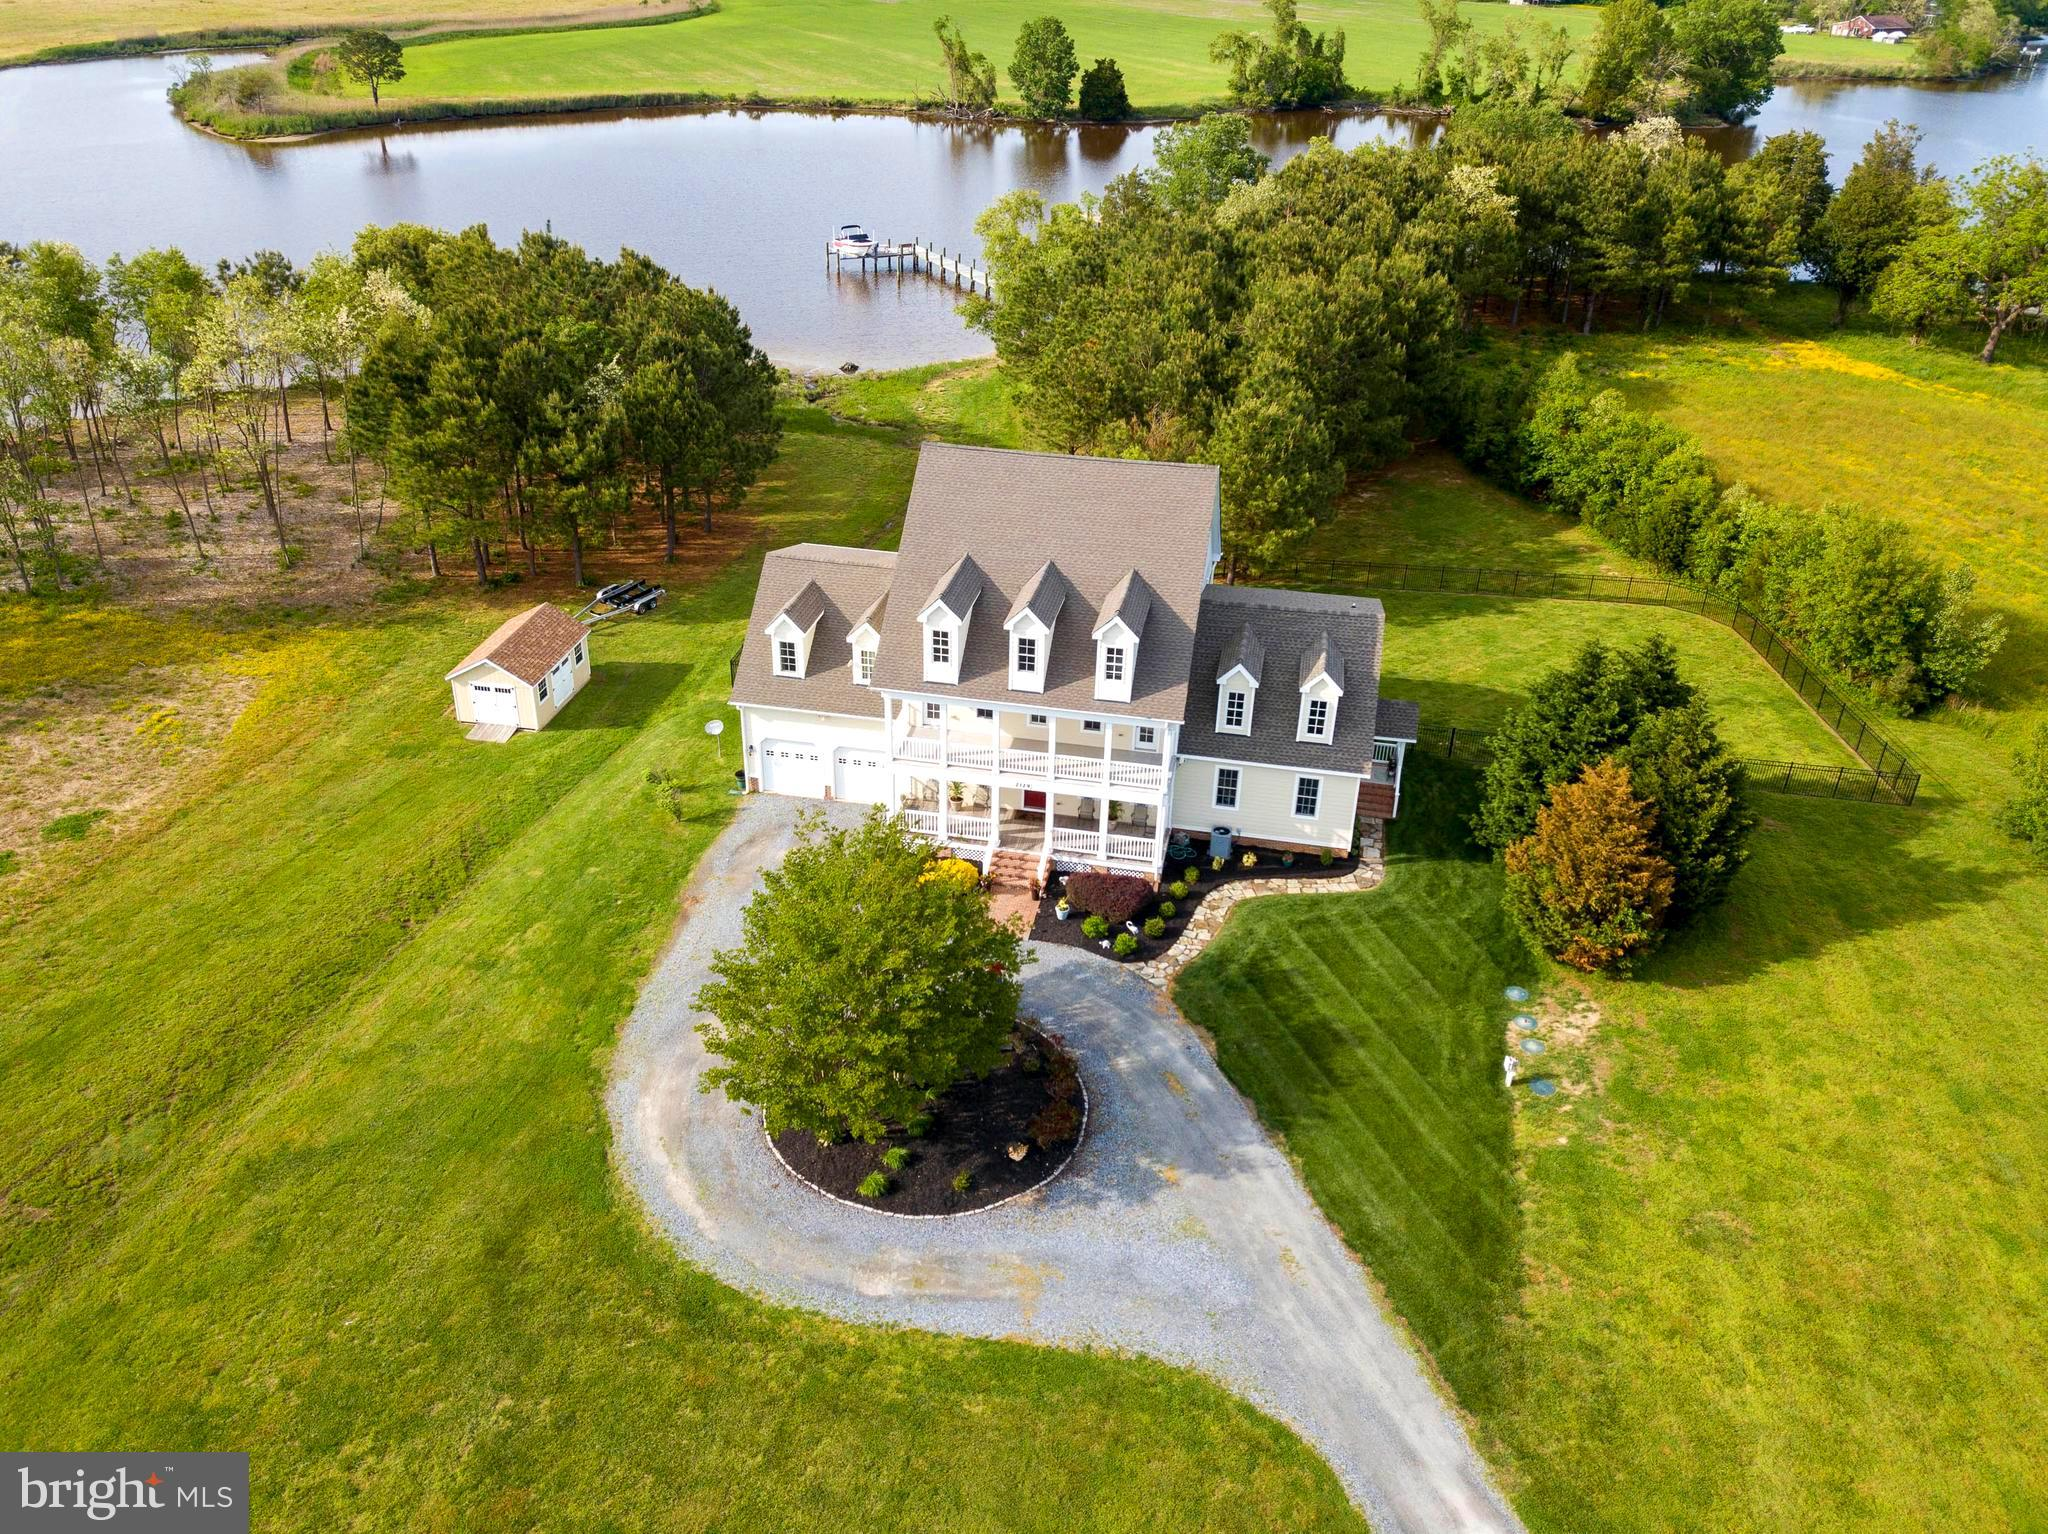 Welcome to the Shore!  Beautifully appointed 5 BR, 4.5BA Waterfront Home on 2.33 acres with pier/boat lift is truly move-in ready.  Home was updated in 2019 with  an in-law suite or primary bedroom on the first floor,  gas fireplace, full bath, screened waterfront porch and deck.  The second floor has 4 spacious bedrooms, one being the second floor primary bedroom, with waterside balcony, primary bath, with jet tub, separate shower and walk-in closet.  Two second floor bedrooms have balcony access overlooking freshly planted farmland.  This home has ample storage on both the second and third floors, with permanent stairway for safe and easy access.   Given its location, you have easy access to all your water sport activities, as well as, a short drive to all in-town amenities!  Whether it's your permanent home or 2nd home, this home will accommodate all your lifestyle needs!  Come enjoy the lifestyle of the Shore, you won't regret it!